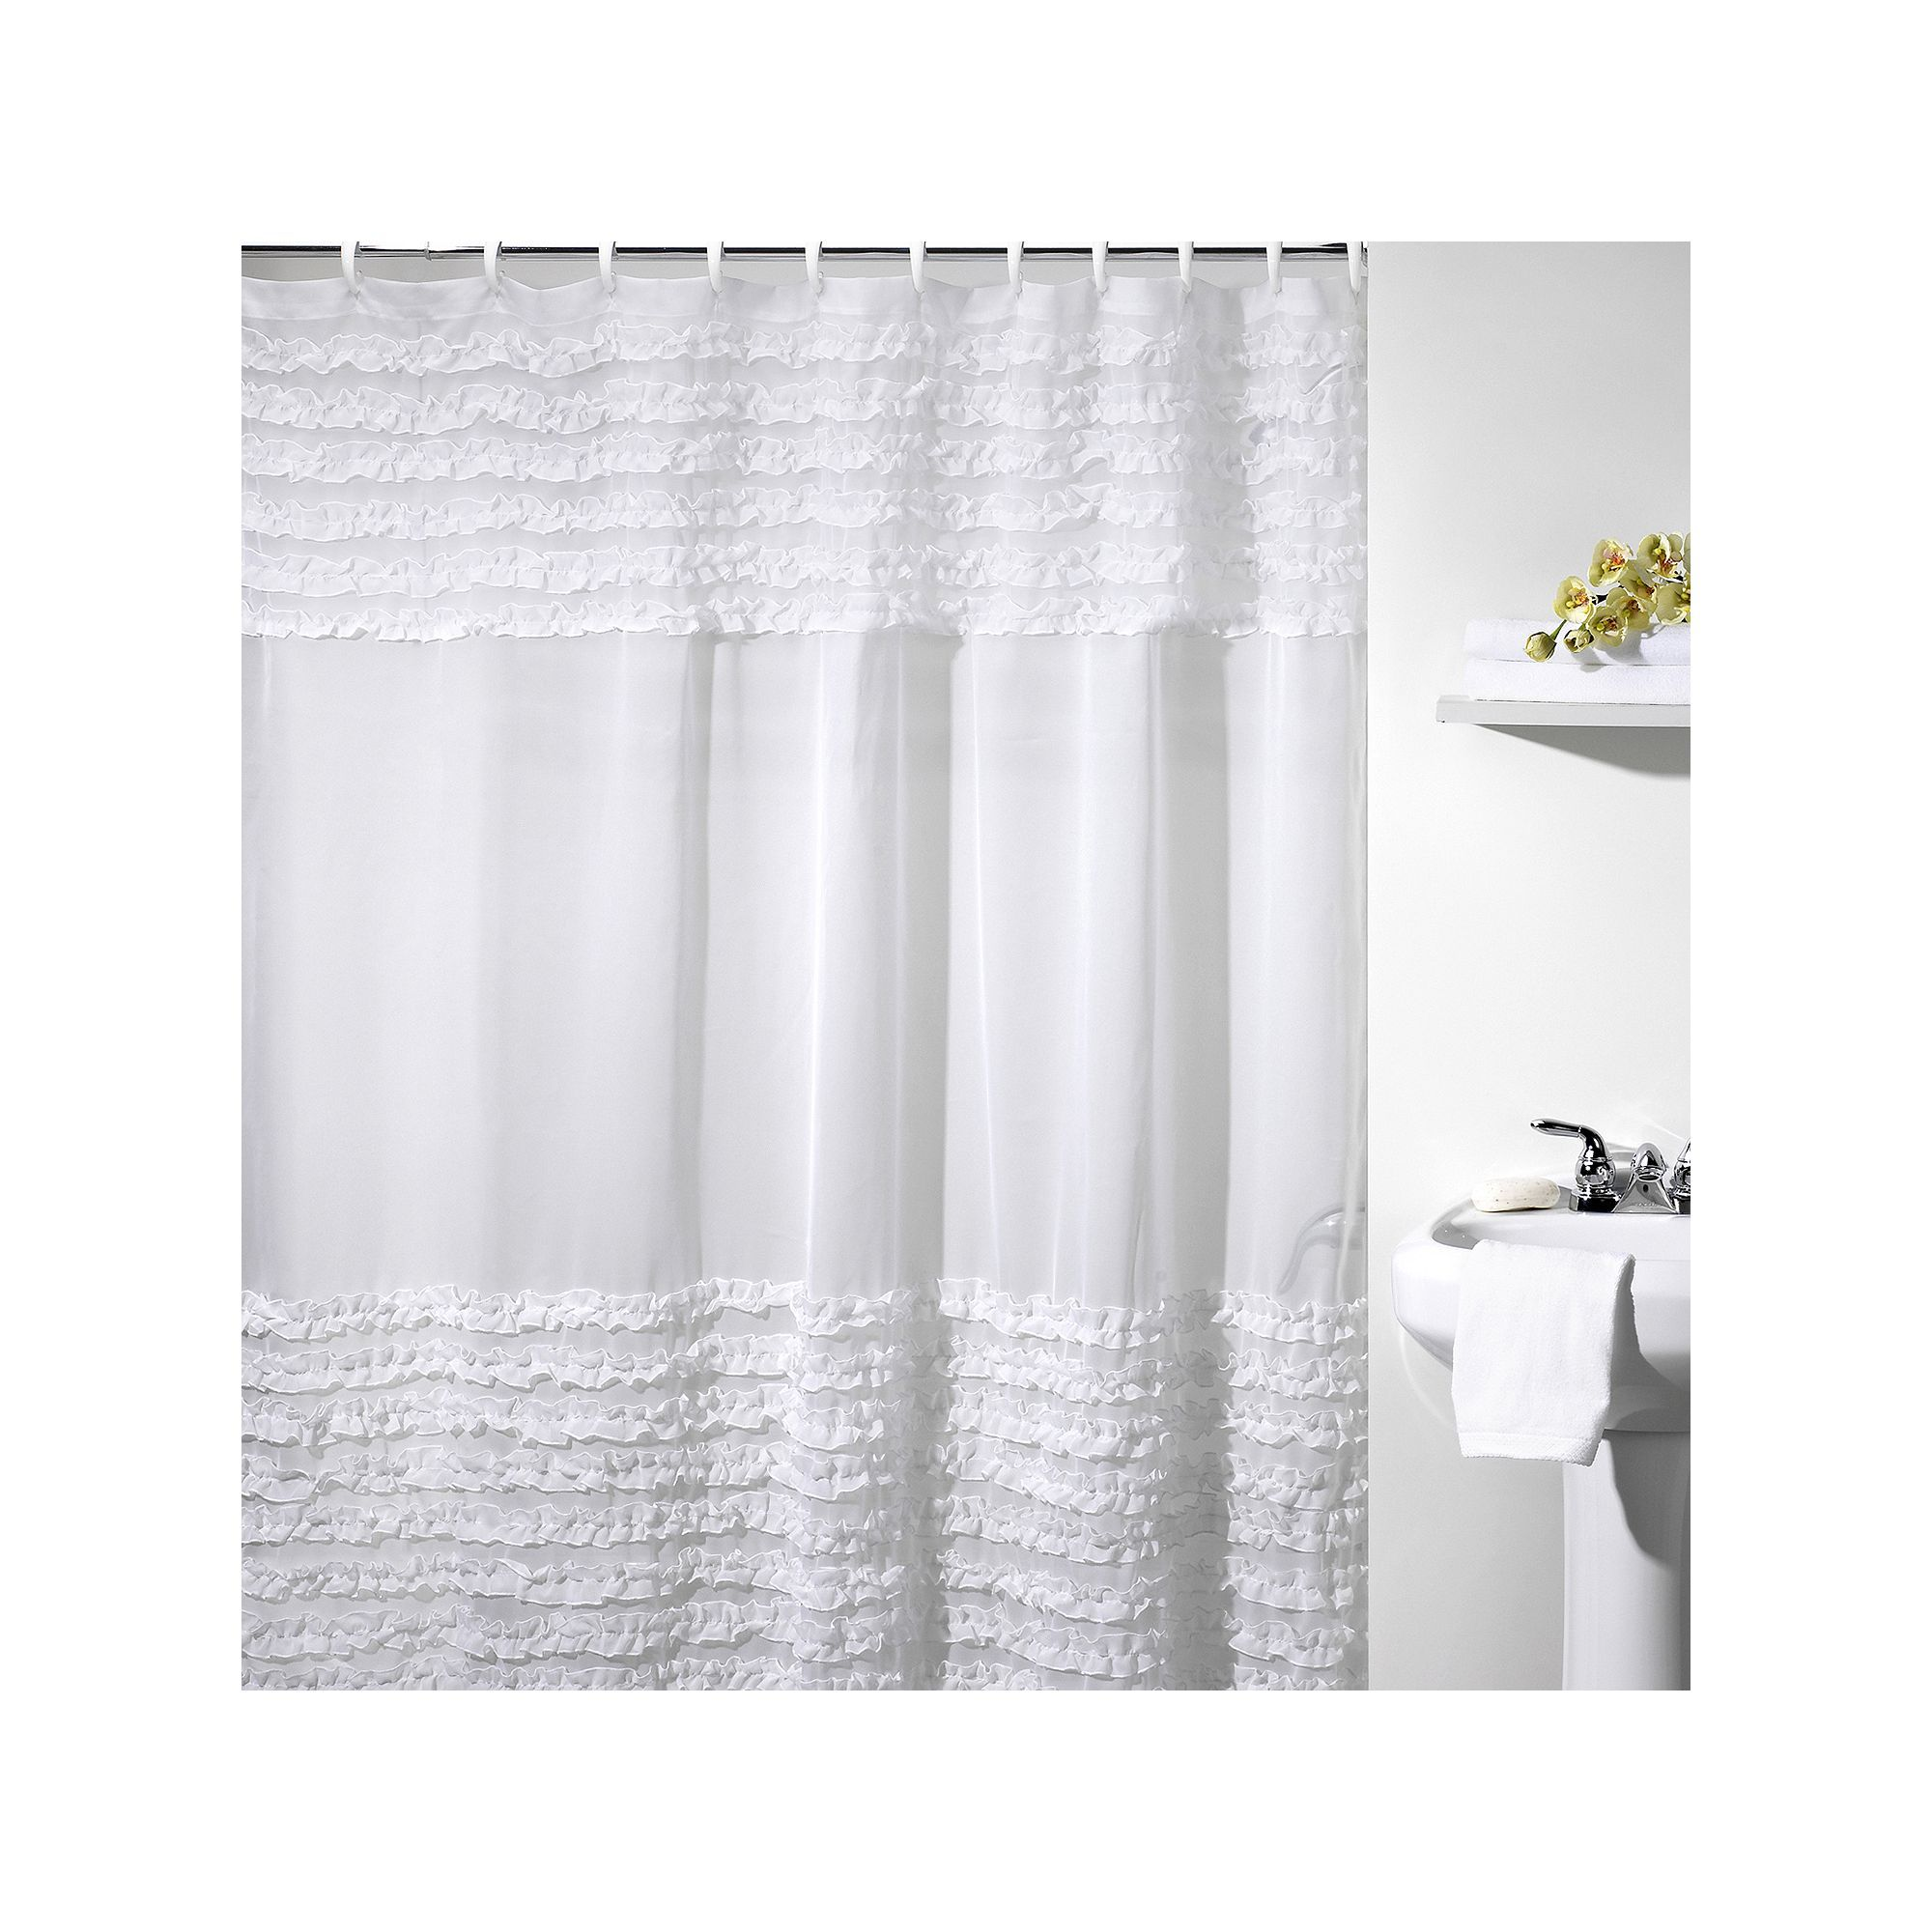 Creative Bath Ruffles Fabric Shower Curtain White Ruffle Shower Curtains White Shower Curtain Shabby Chic Shower Curtain